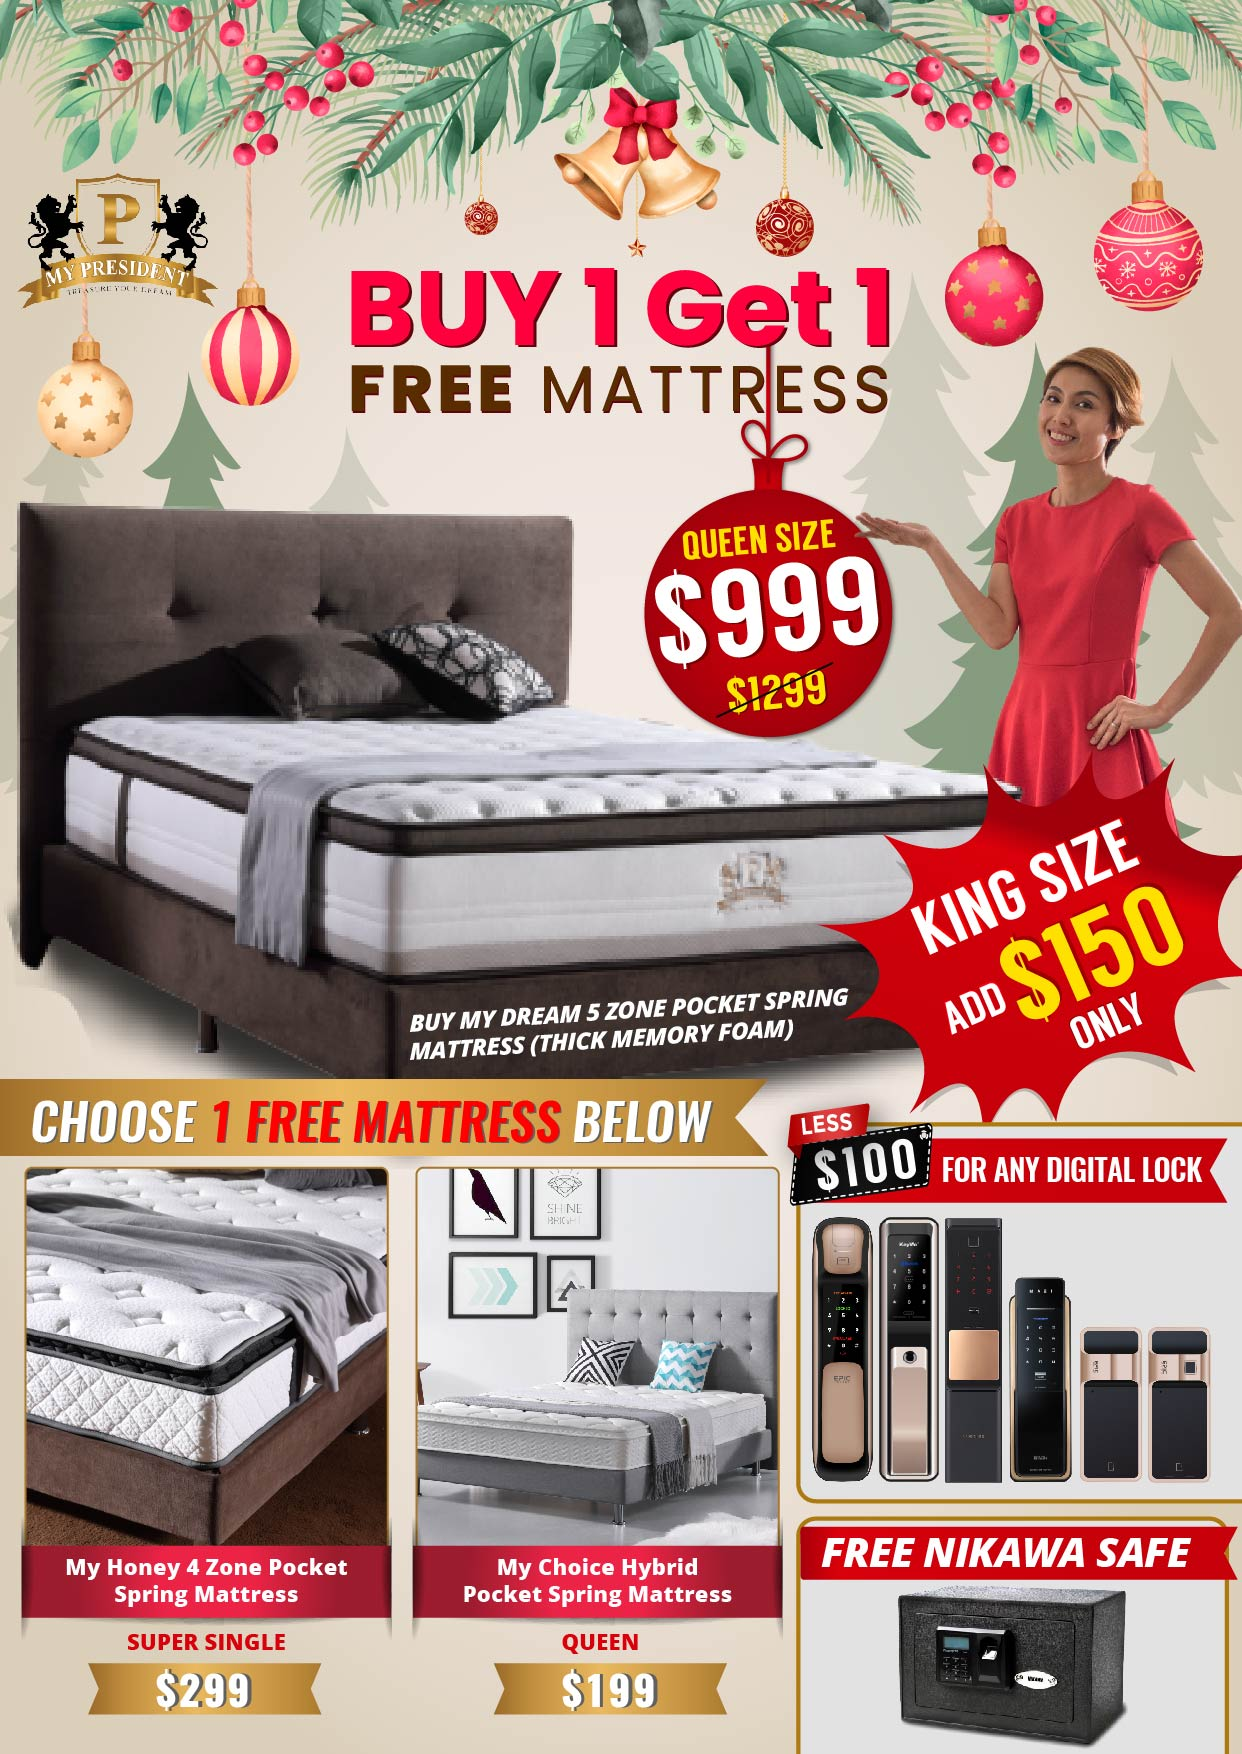 My President Mattress Buy 1 Get 1 FREE Mattress Christmas Promotions 2019